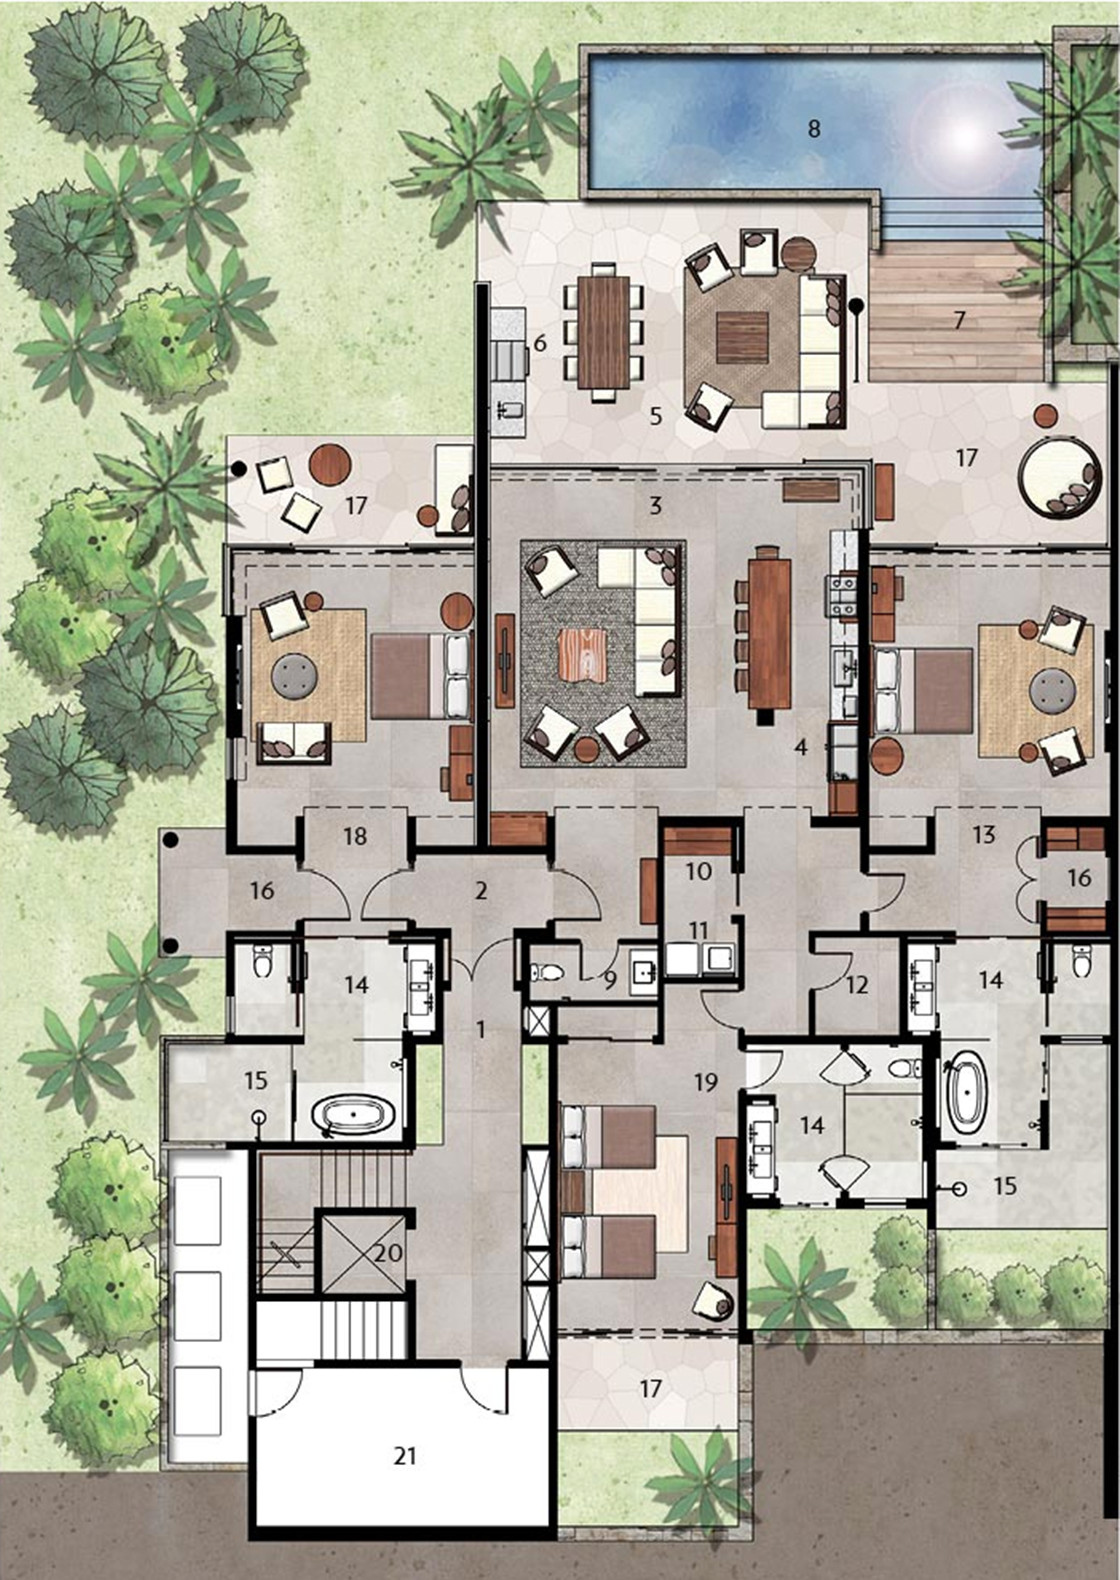 Luxury villas floor plans modern house for Plan des villas modernes